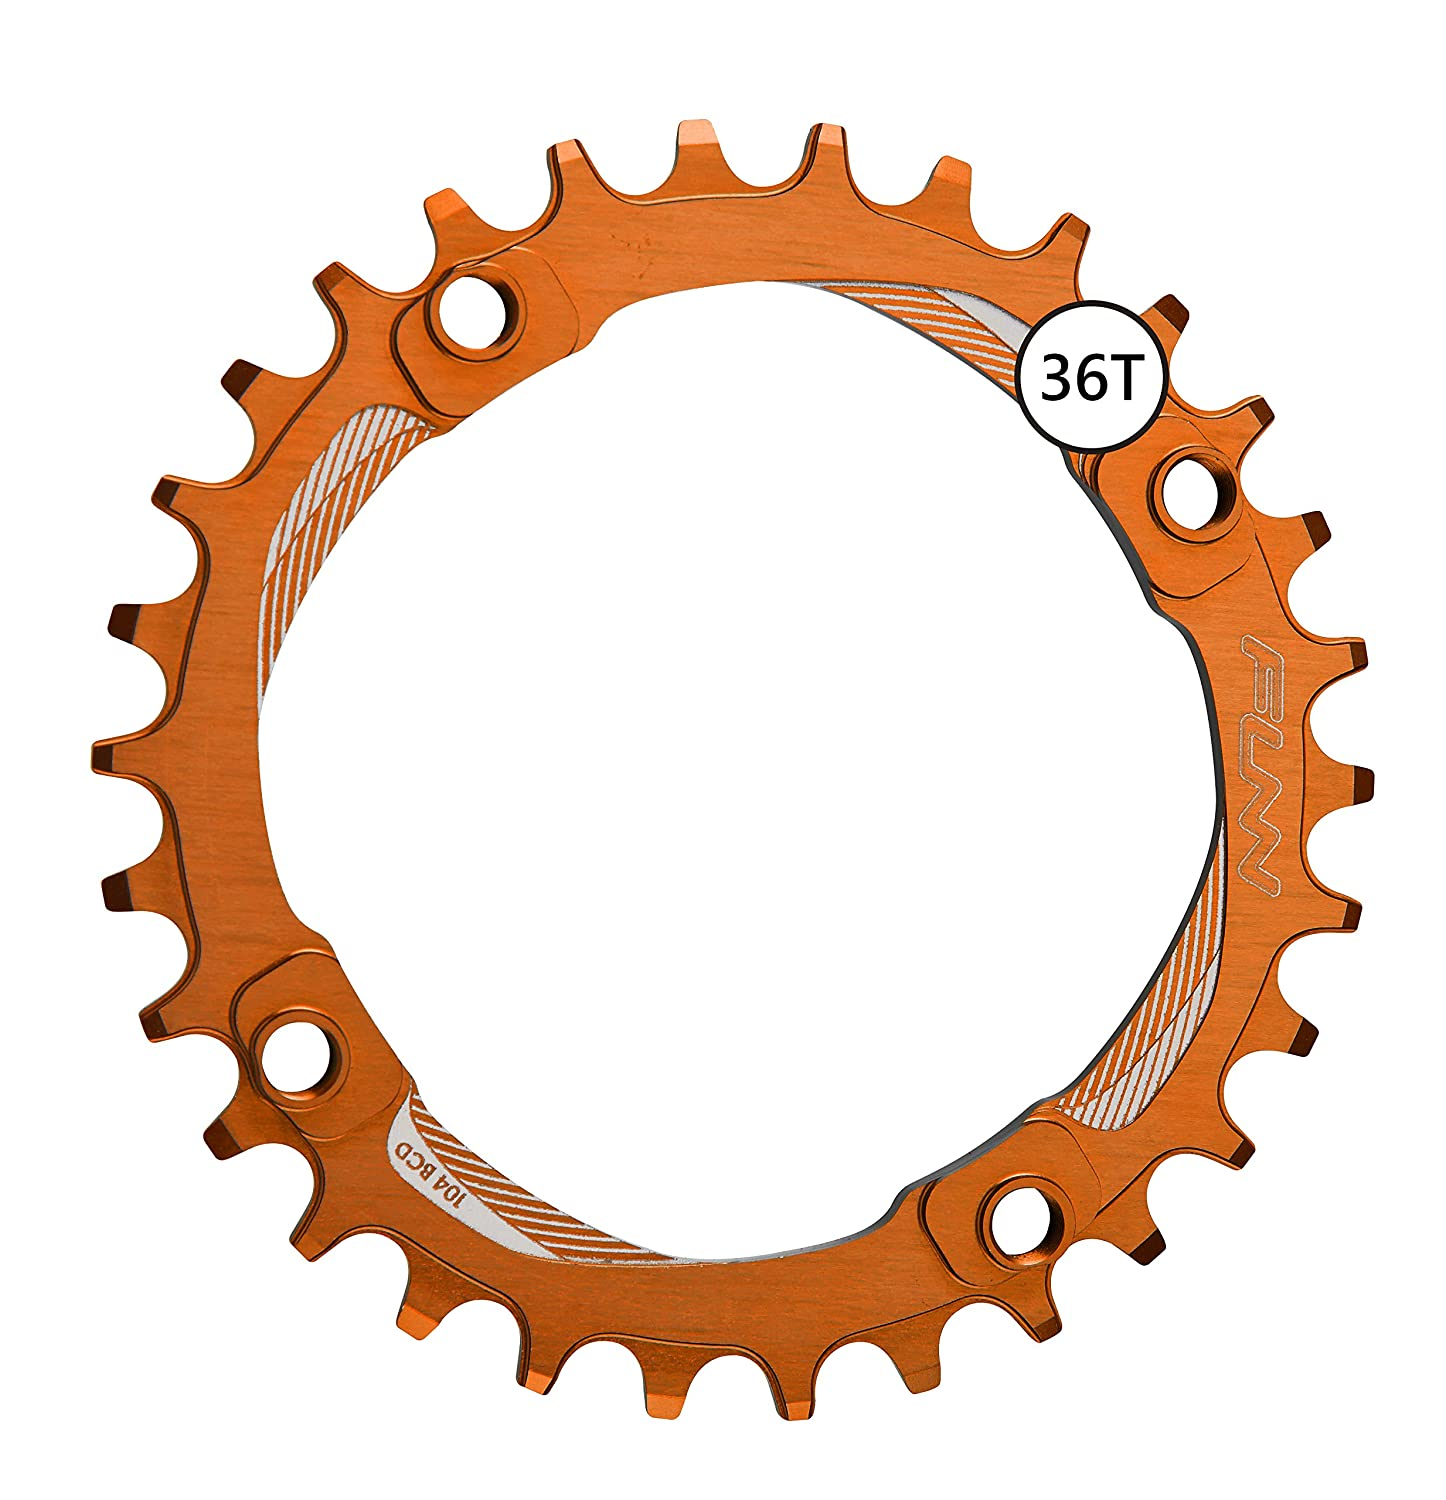 FunnソロNarrow Wide Chainring 36t B076P6HSBZ オレンジ オレンジ